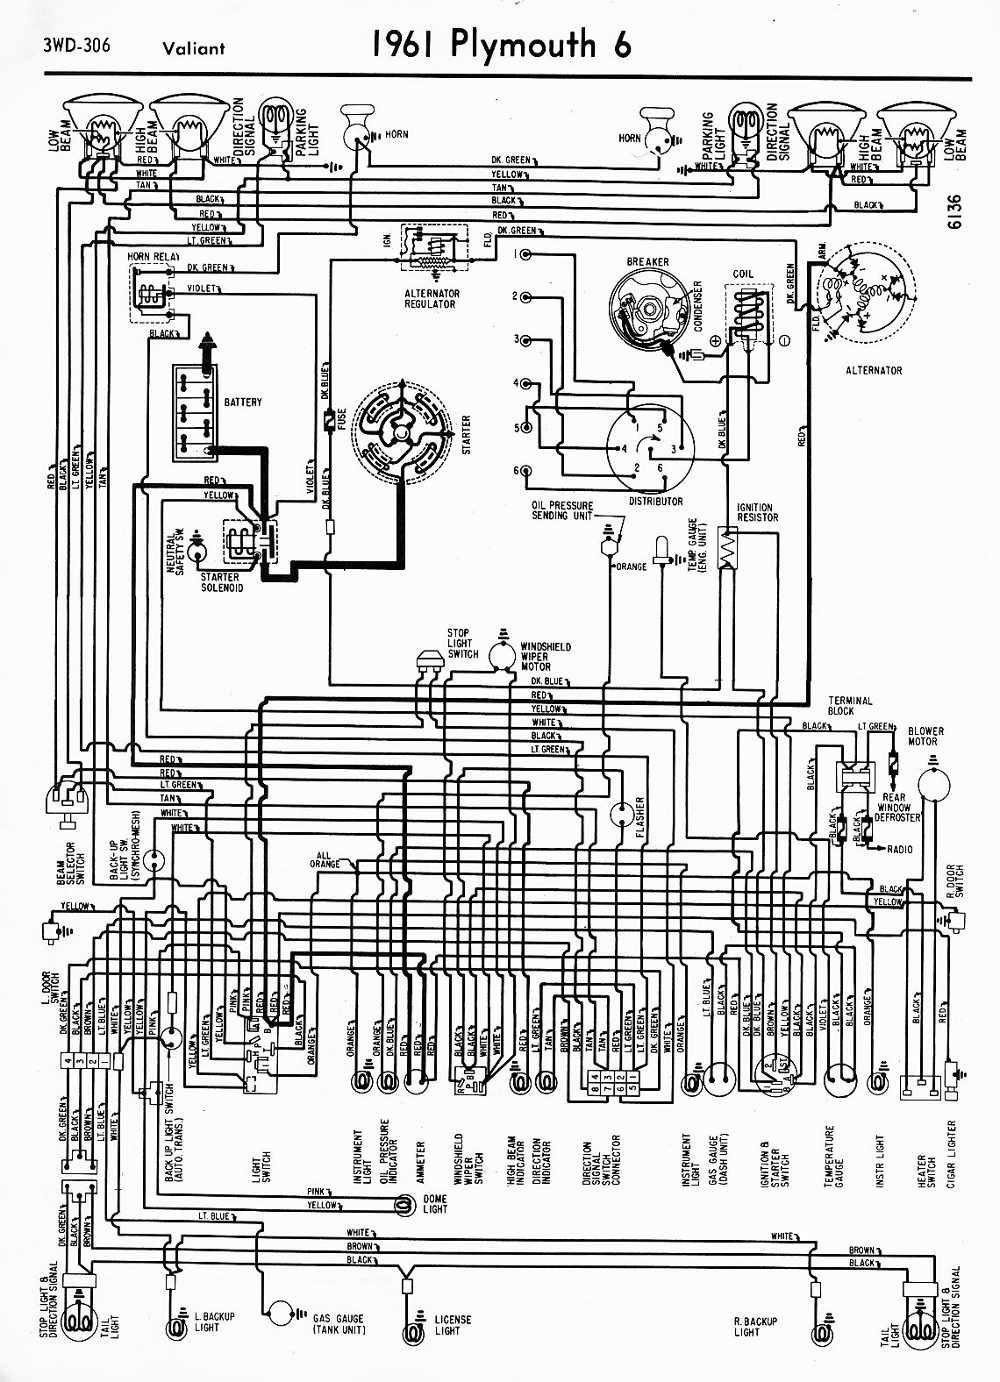 1965 plymouth wiring diagram wiring diagram libraries 1947 plymouth wiring diagram wiring diagram for you u20221970 dodge coronet wiring diagram 33